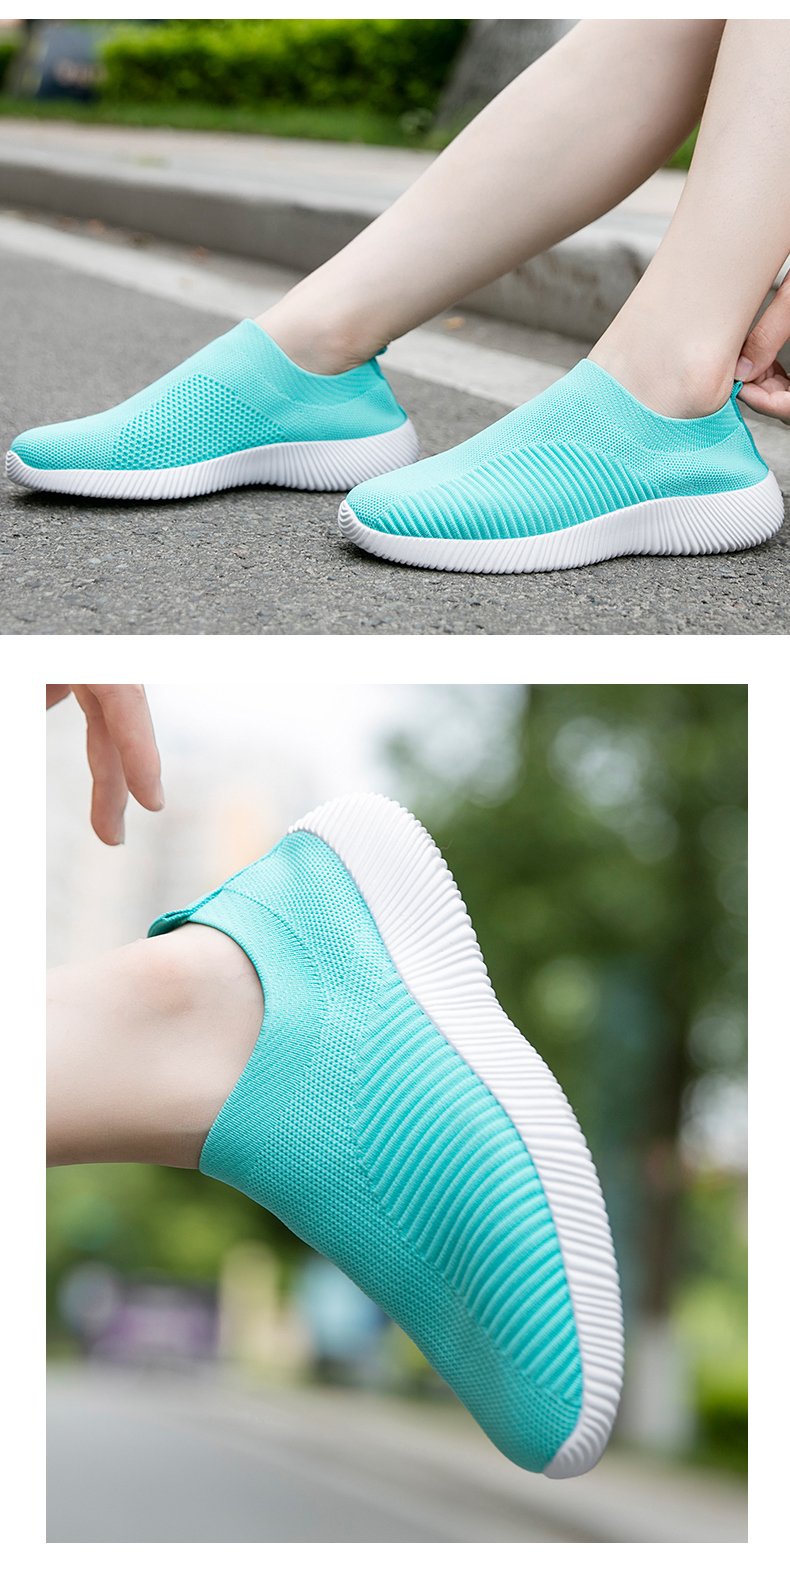 Slip On Flying Knit Women Fashion Sneakers Breathable Flat Heel Casual Shoes Round Toe Low Top Women Shoes XU034 (10)